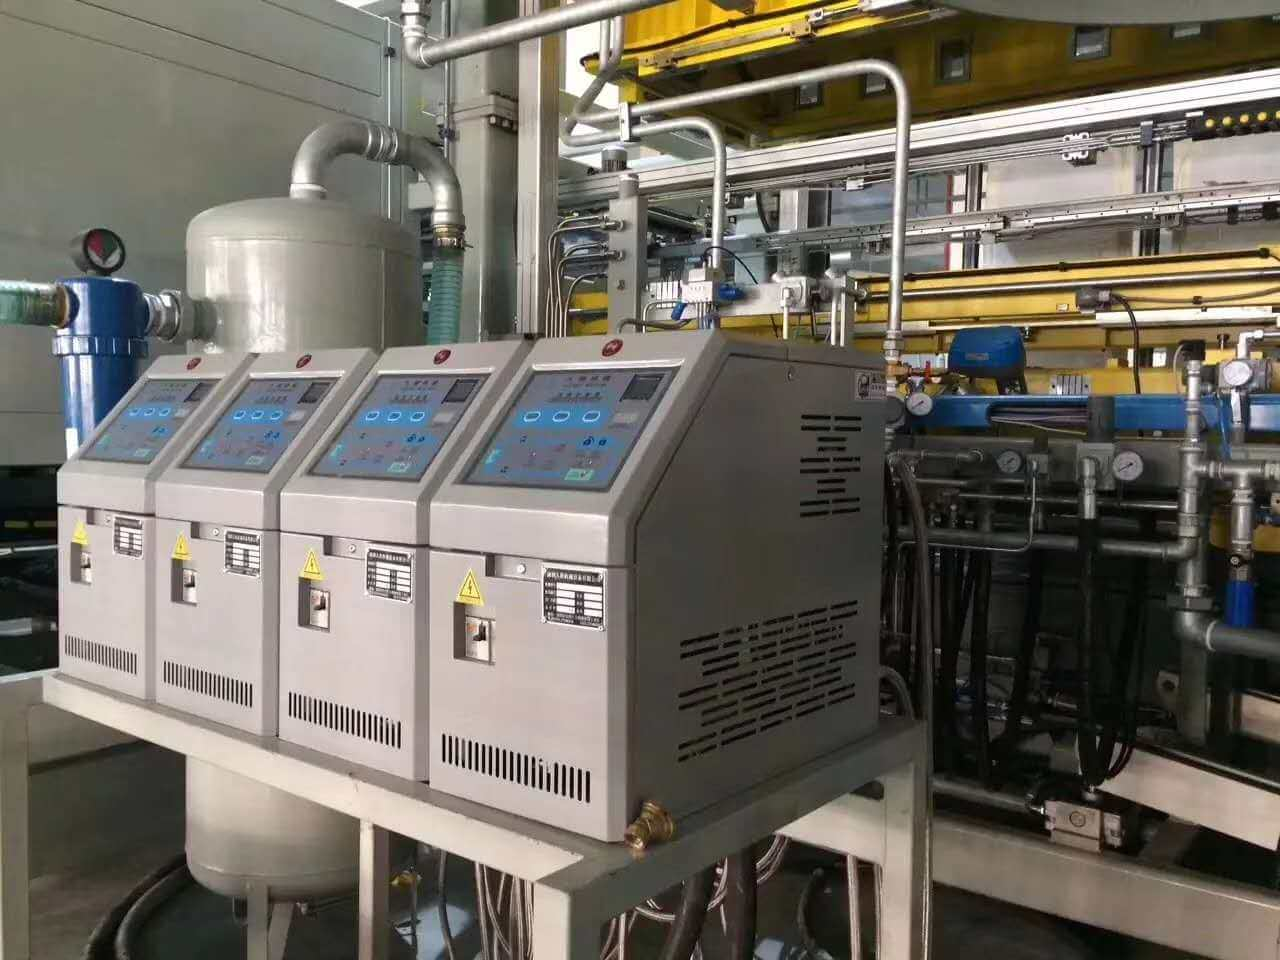 DO YOU KNOW THE APPLICATION OF MOLD TEMPERATURE MACHINE IN INJECTION MOLDS?